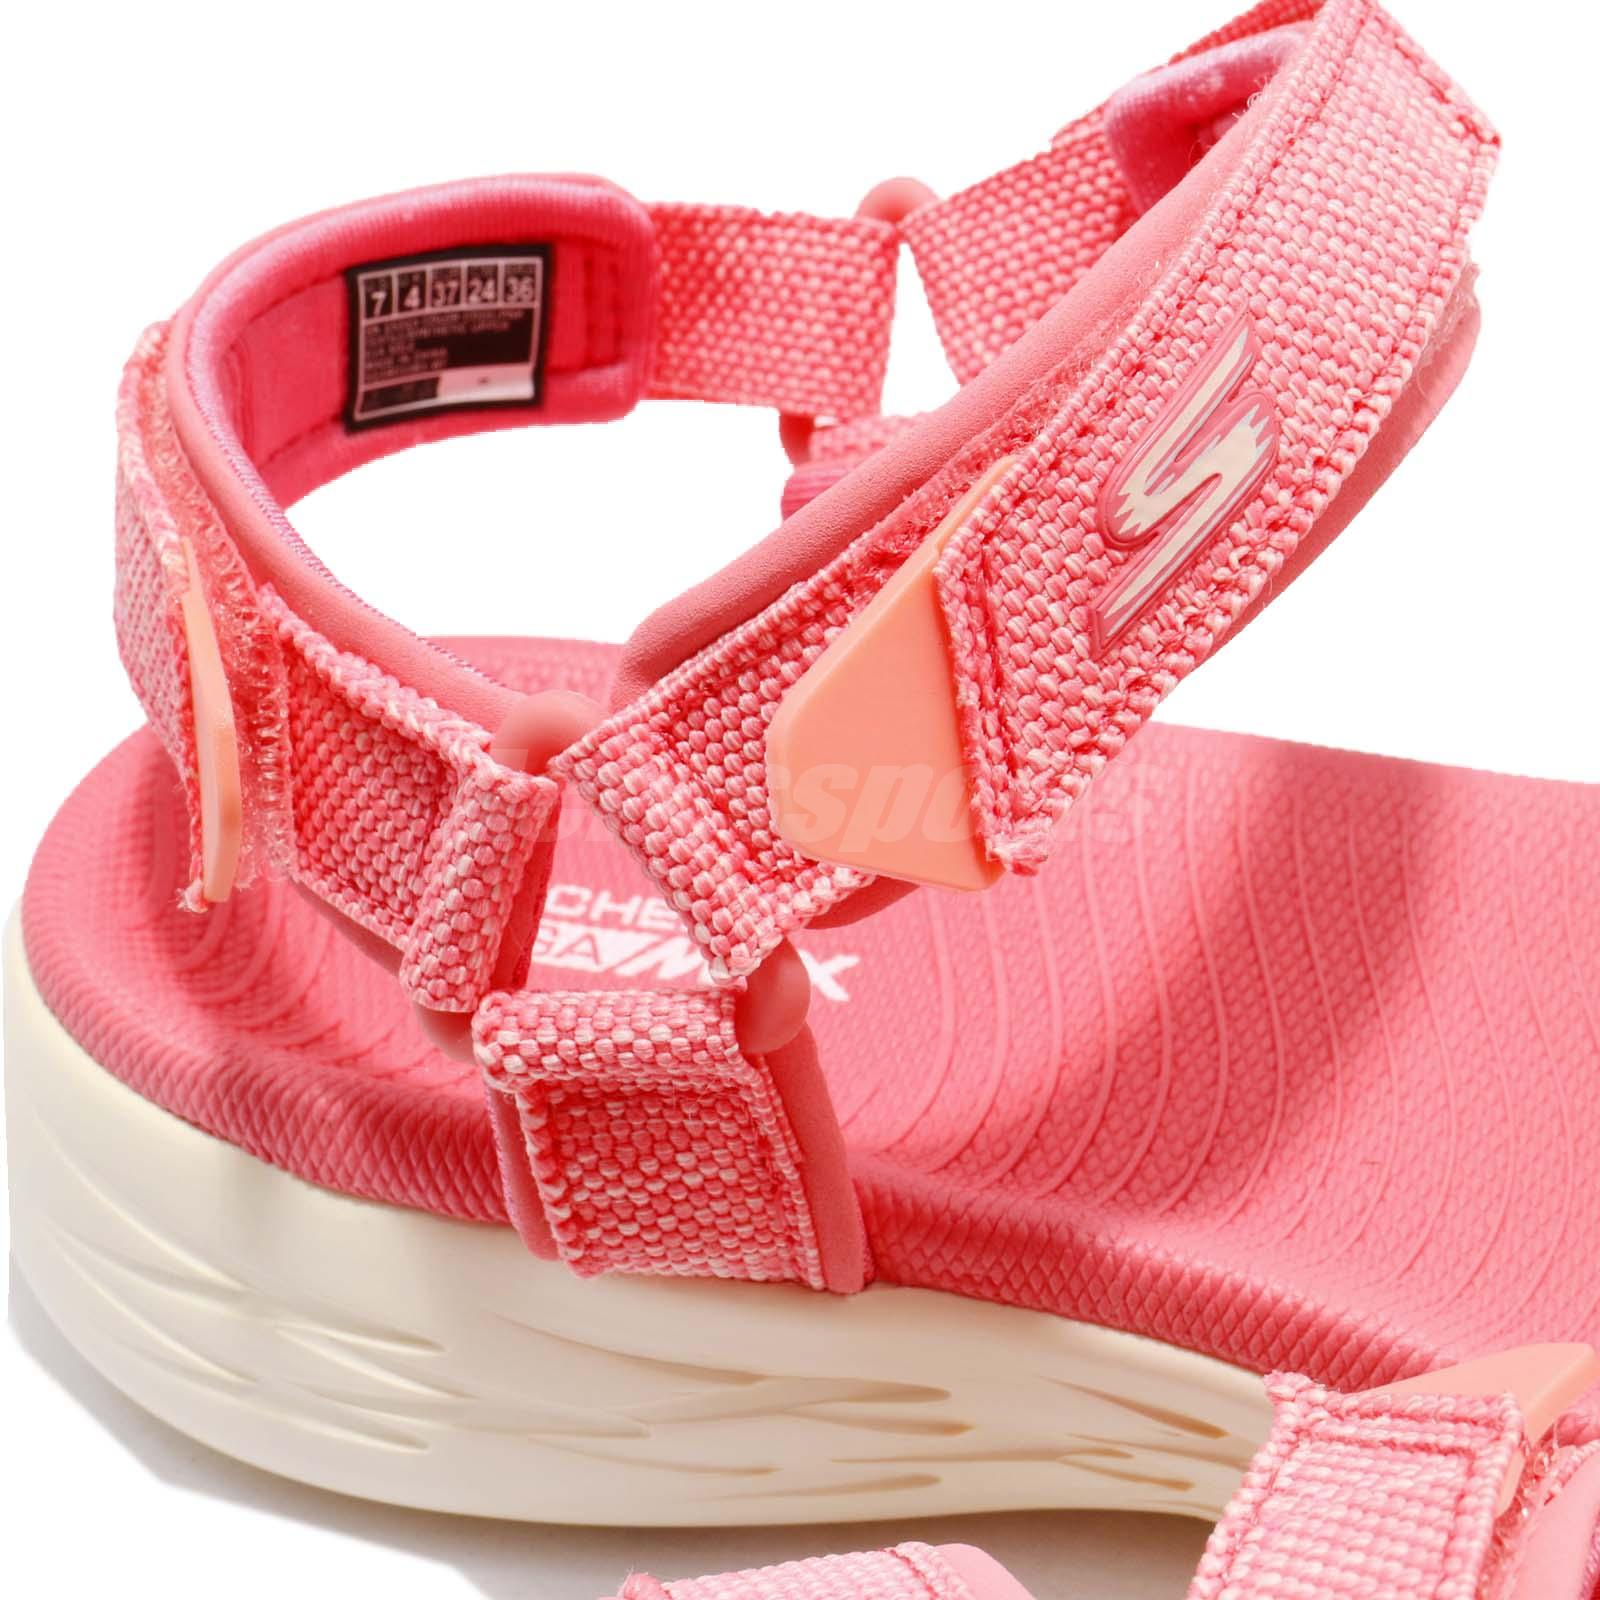 4b227cc6e4d7 Skechers On-The-Go 600-Radiant Pink White Women Sandal Slippers ...